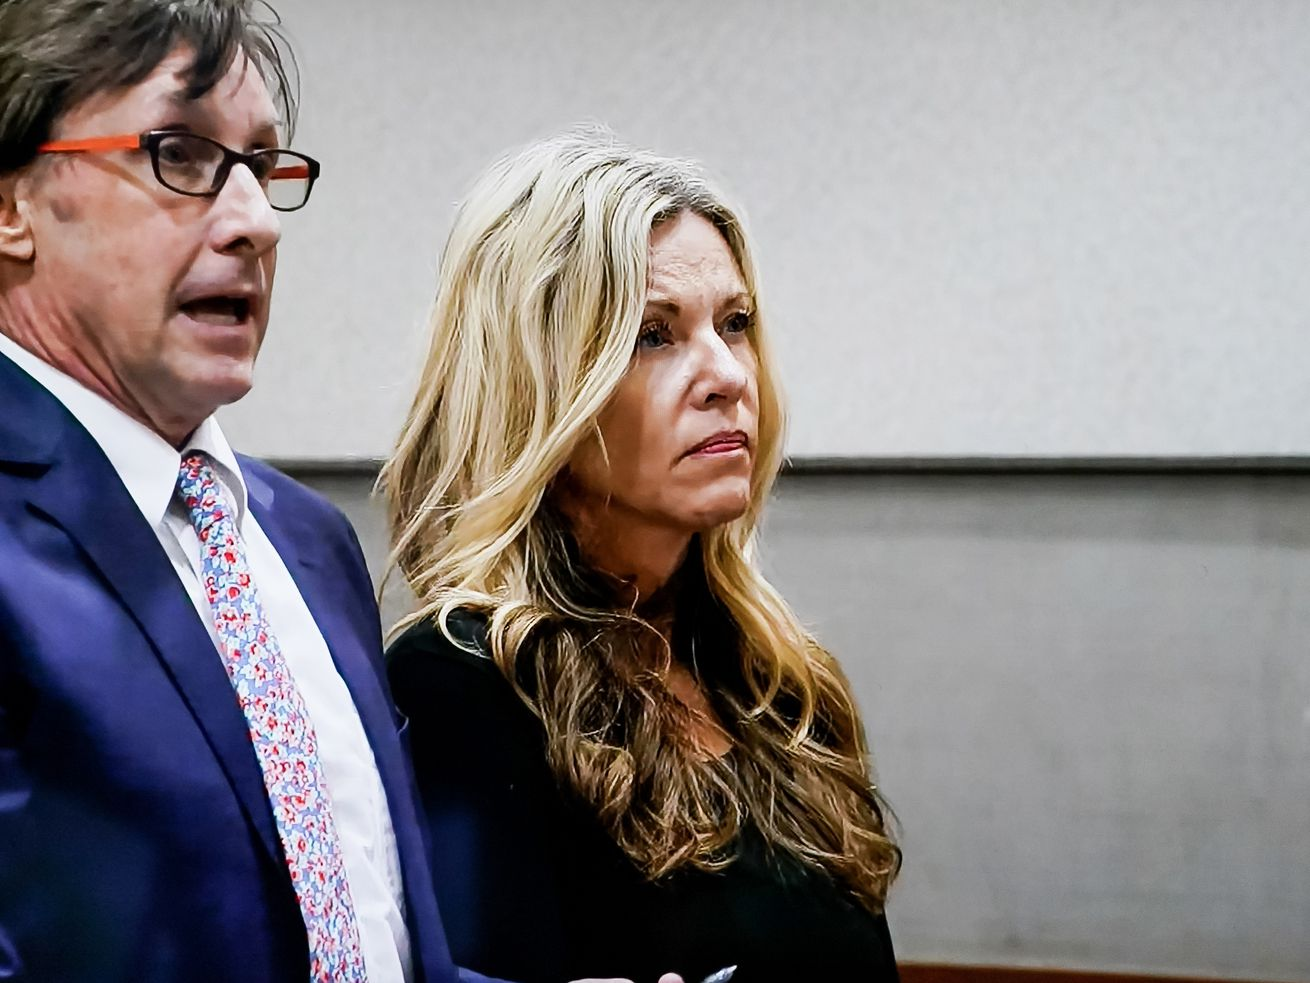 Lori Vallow appears in court in Kauai, Hawaii, on Friday, Feb. 21, 2020.